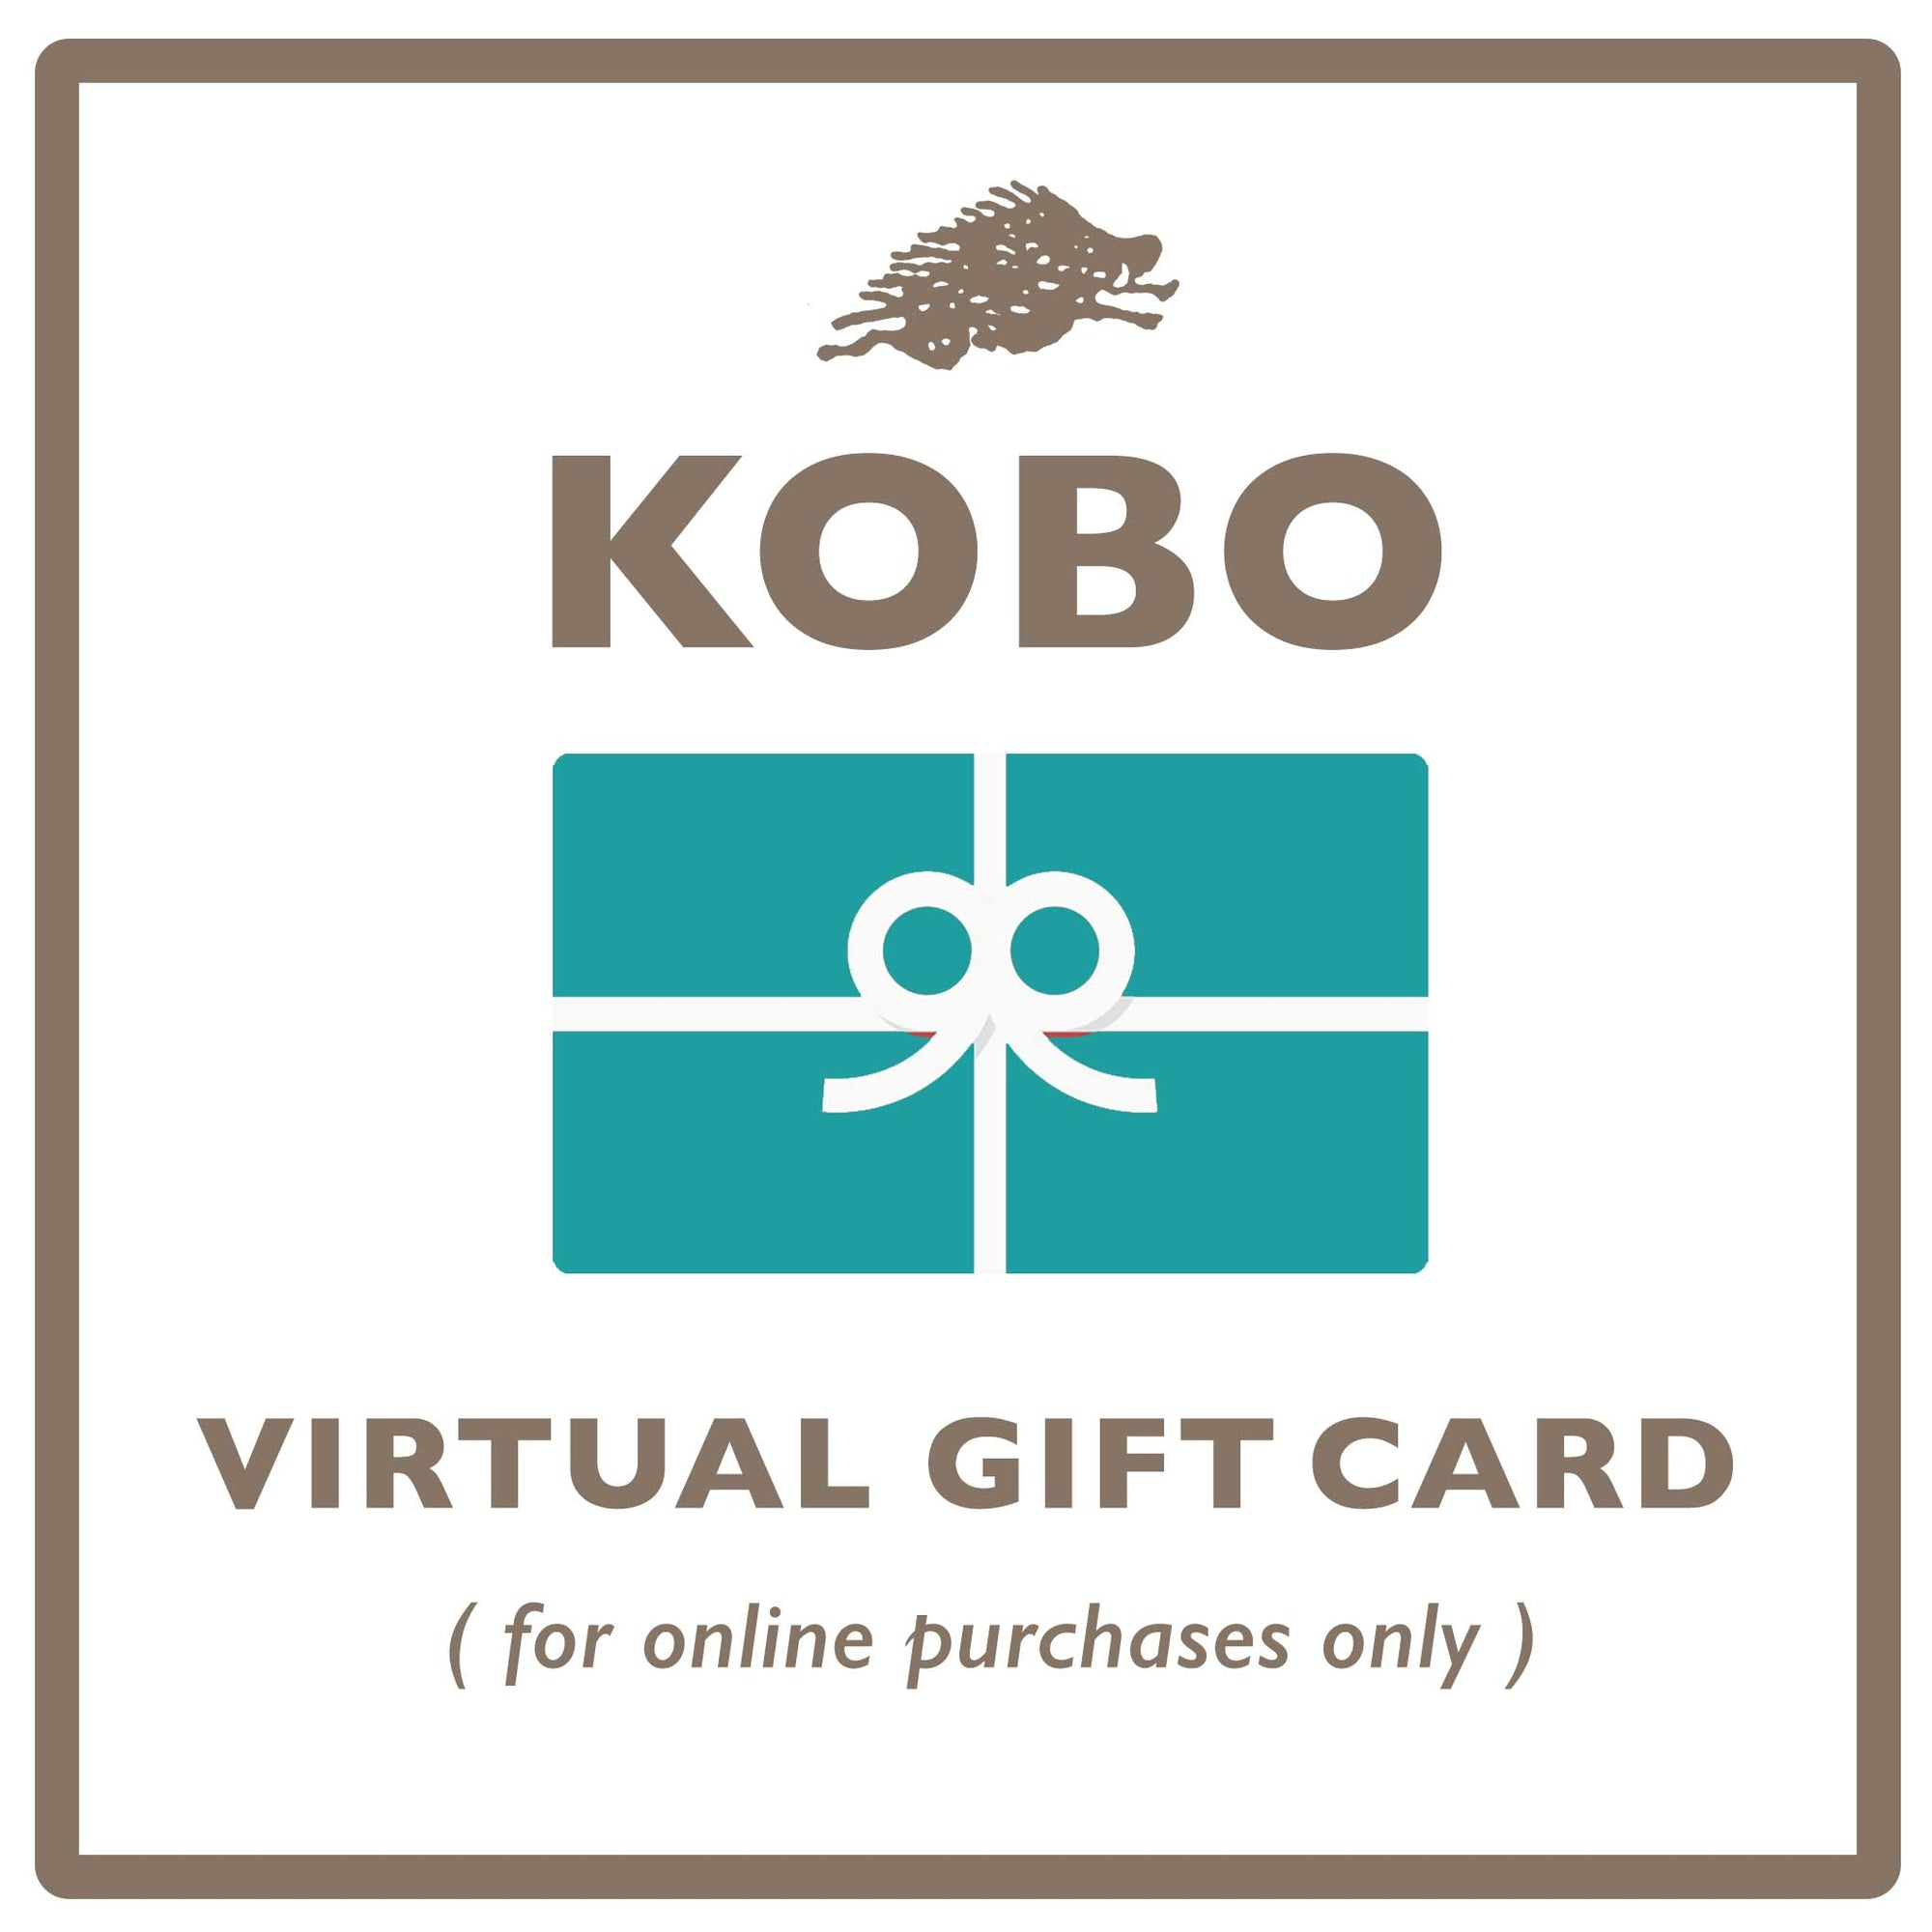 KOBO Virtual Gift Card (For Online Purchases Only)